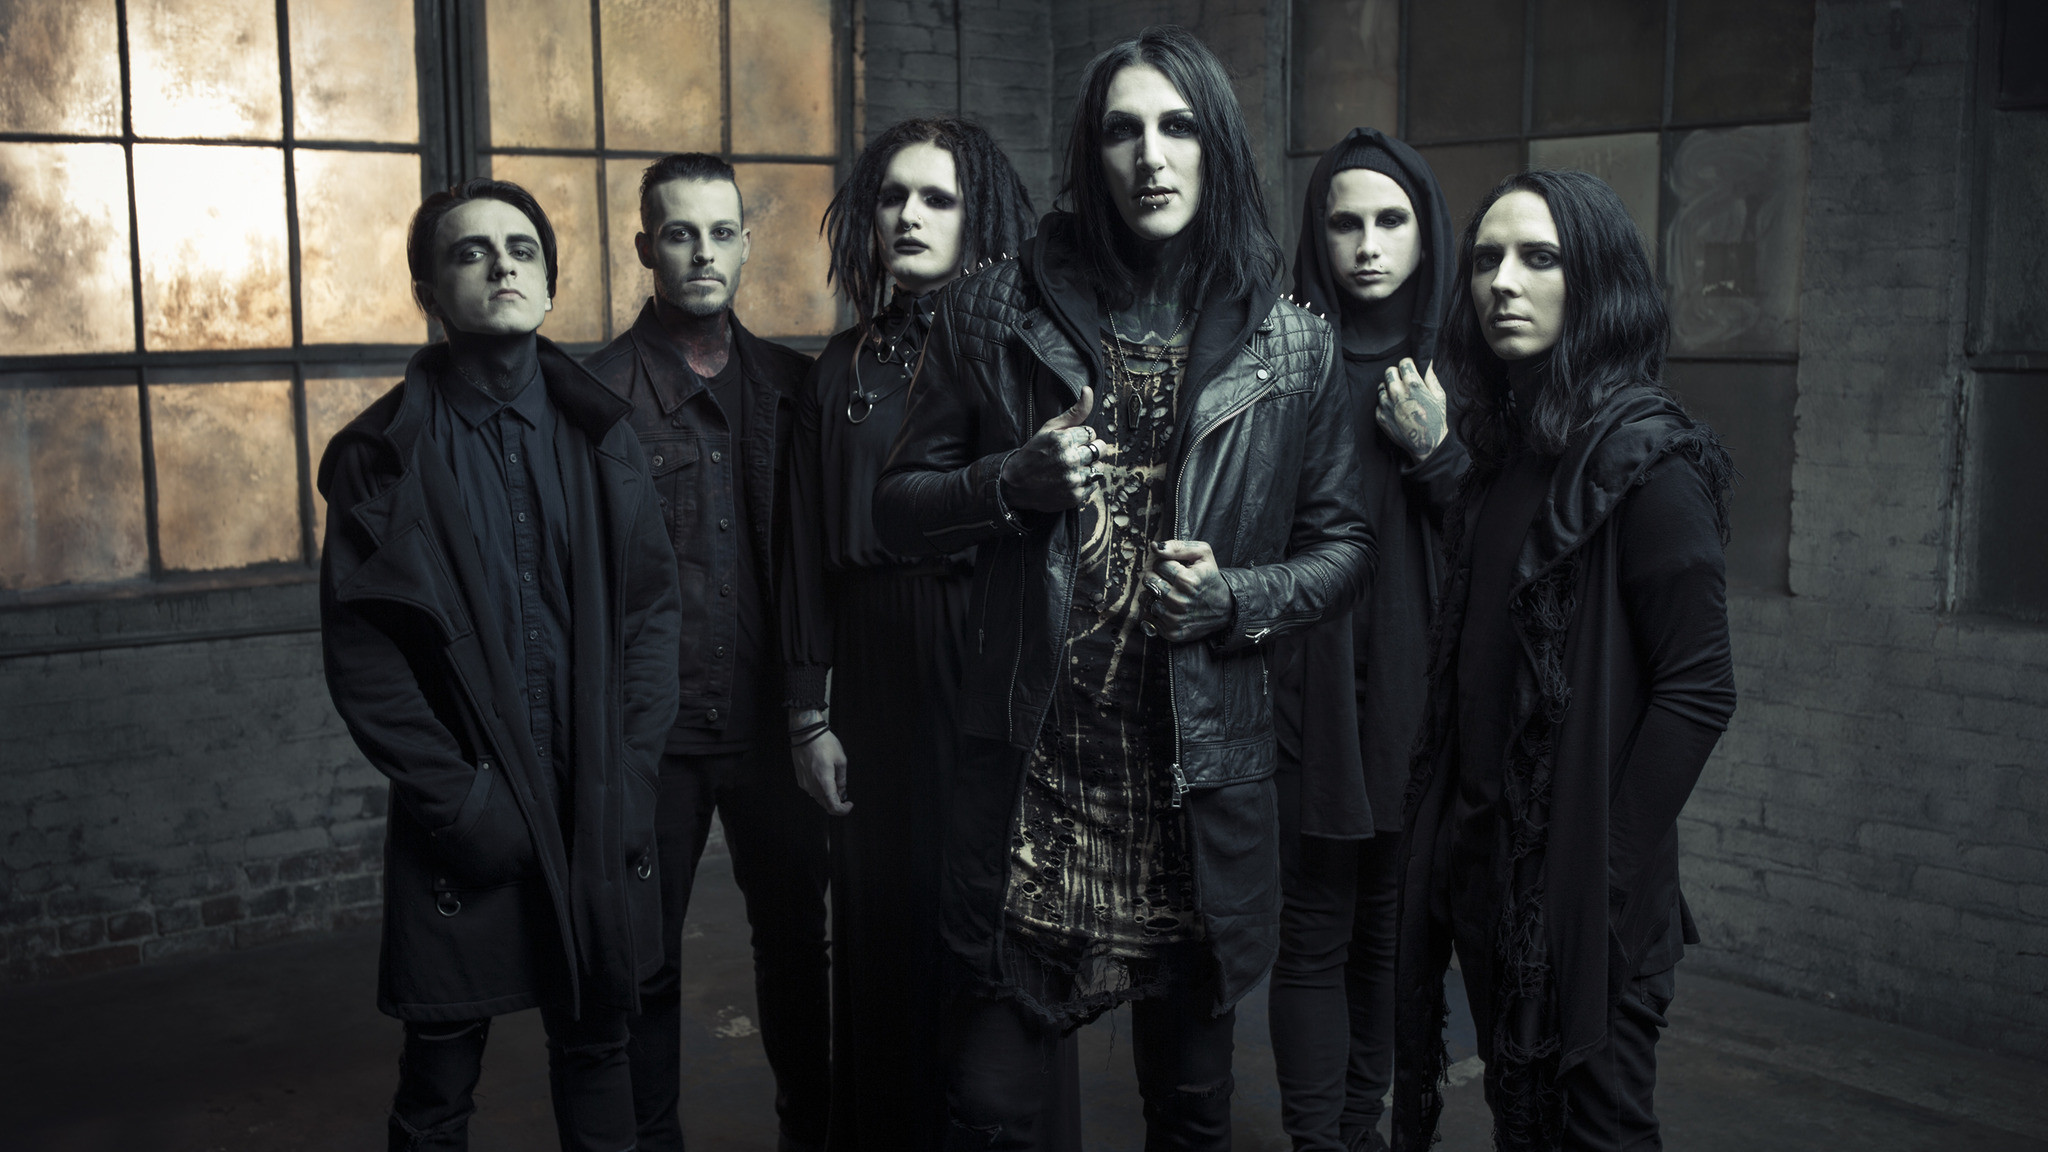 Motionless In White at Center Stage | KISS 104.1 Events Events – Events |  Kiss 104.1